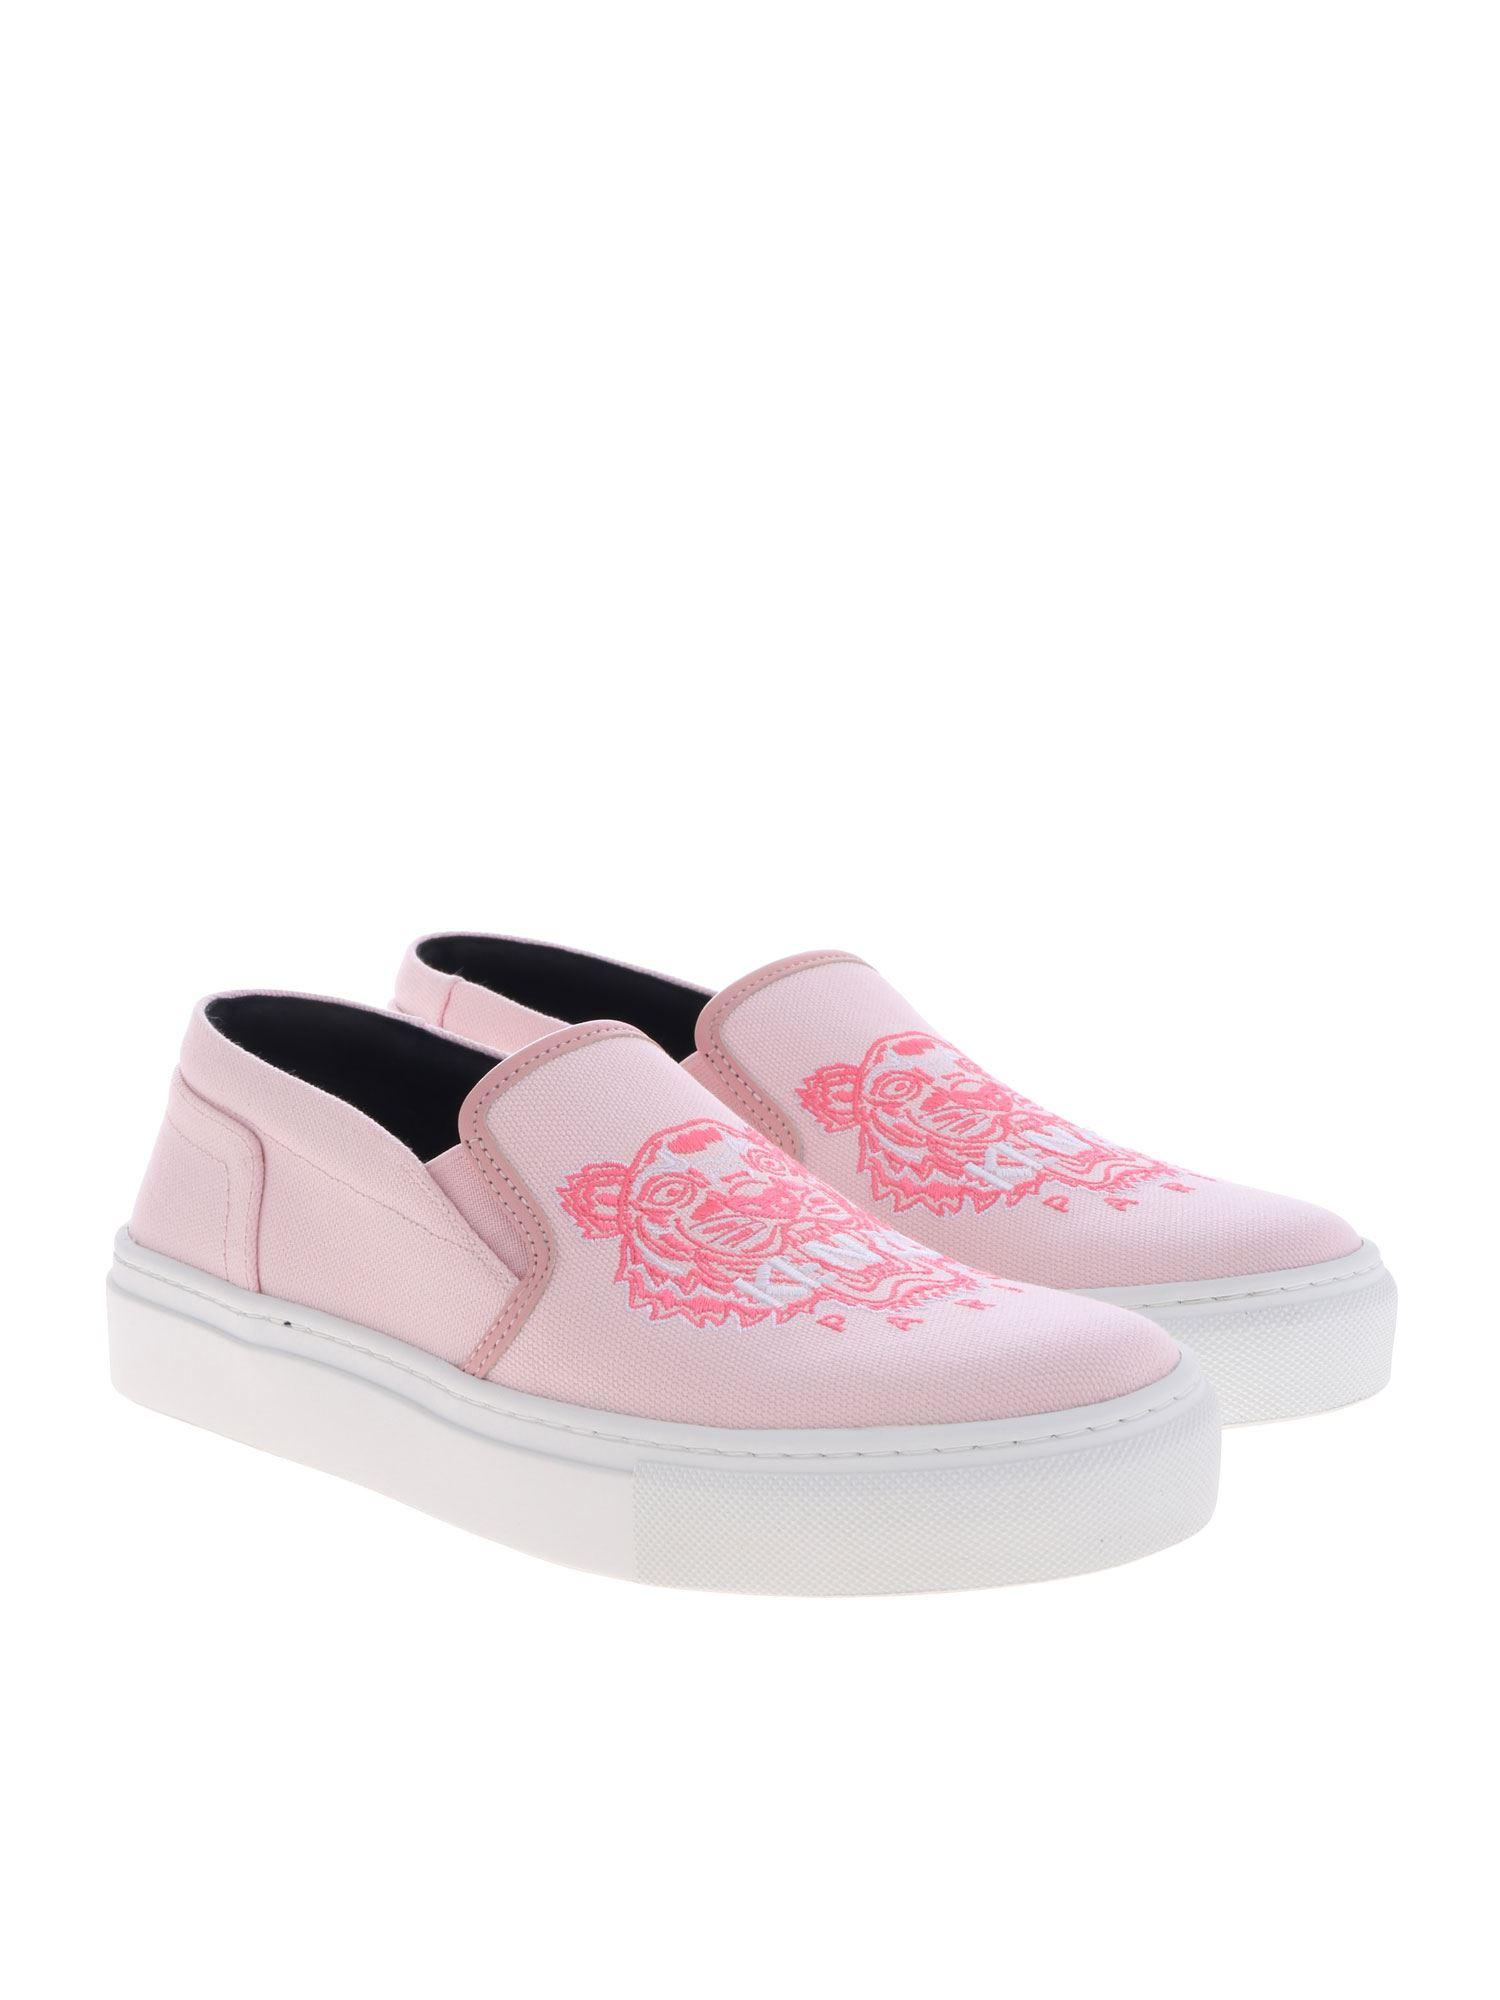 b6fb16b8b4 KENZO K Skate Pink Slip-on With Logo Embroidery in Pink - Lyst